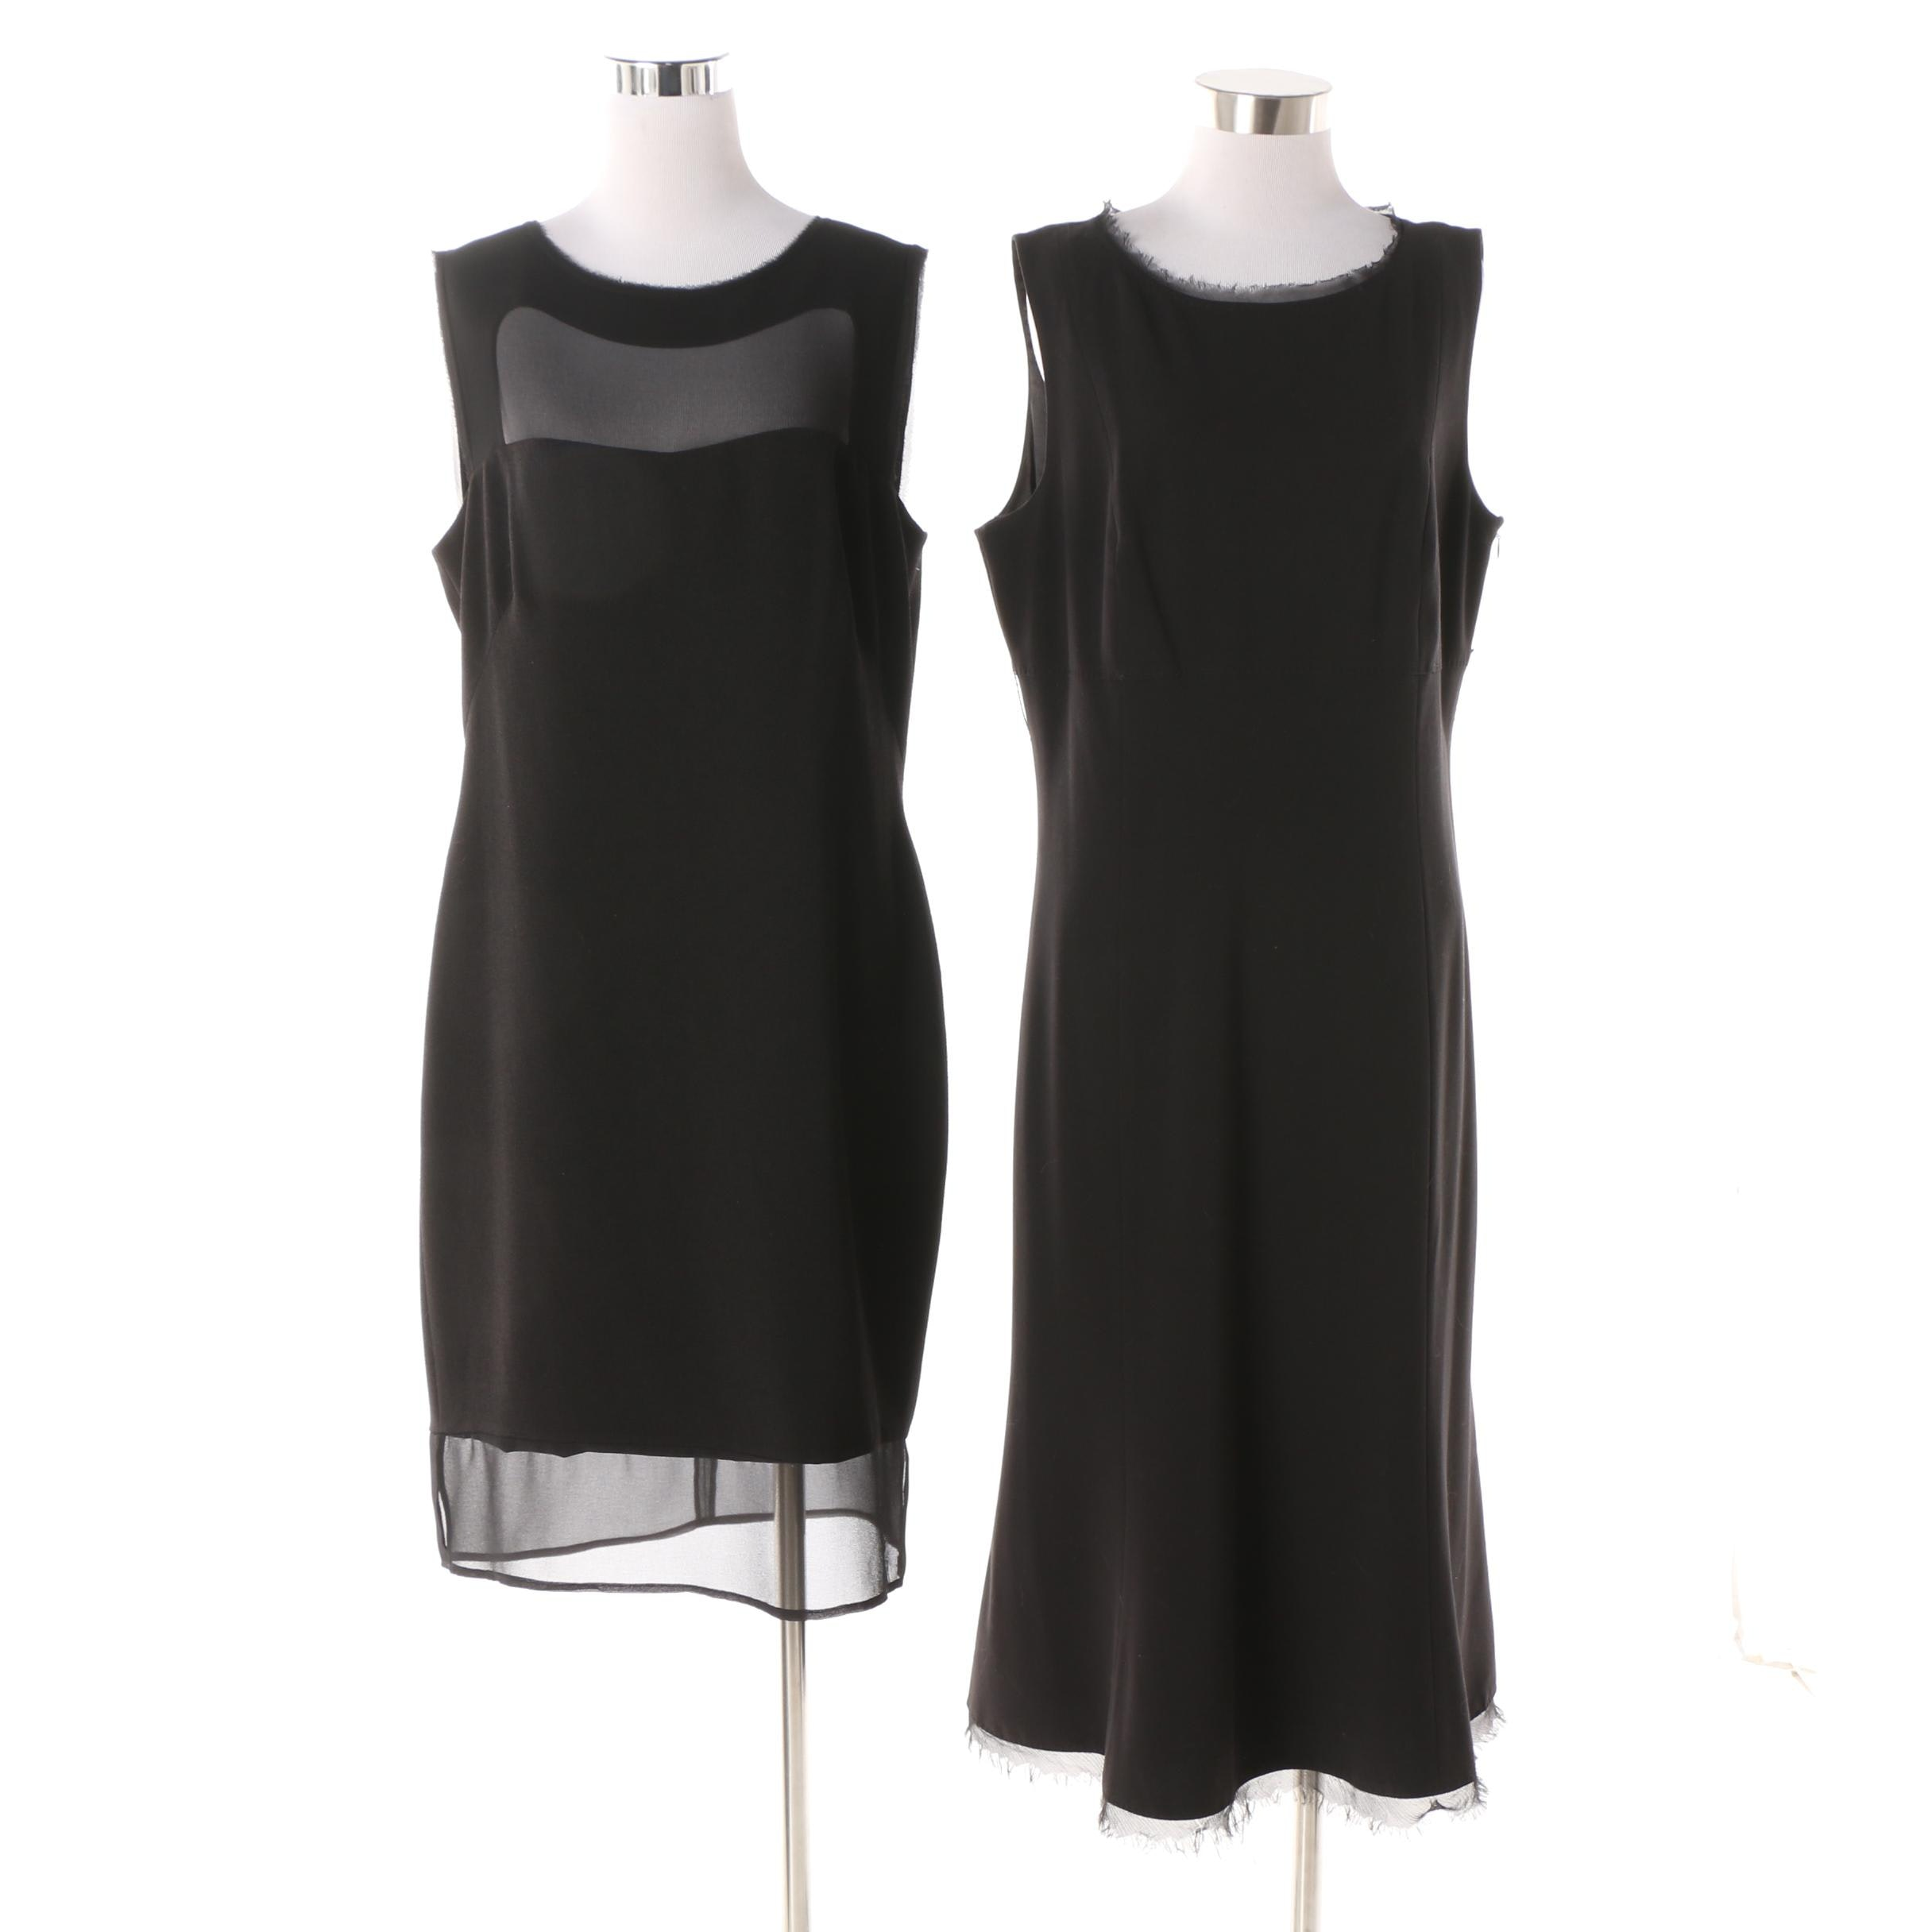 Women's T Tahari and Jessica Simpson Black Sleeveless Cocktail Dresses